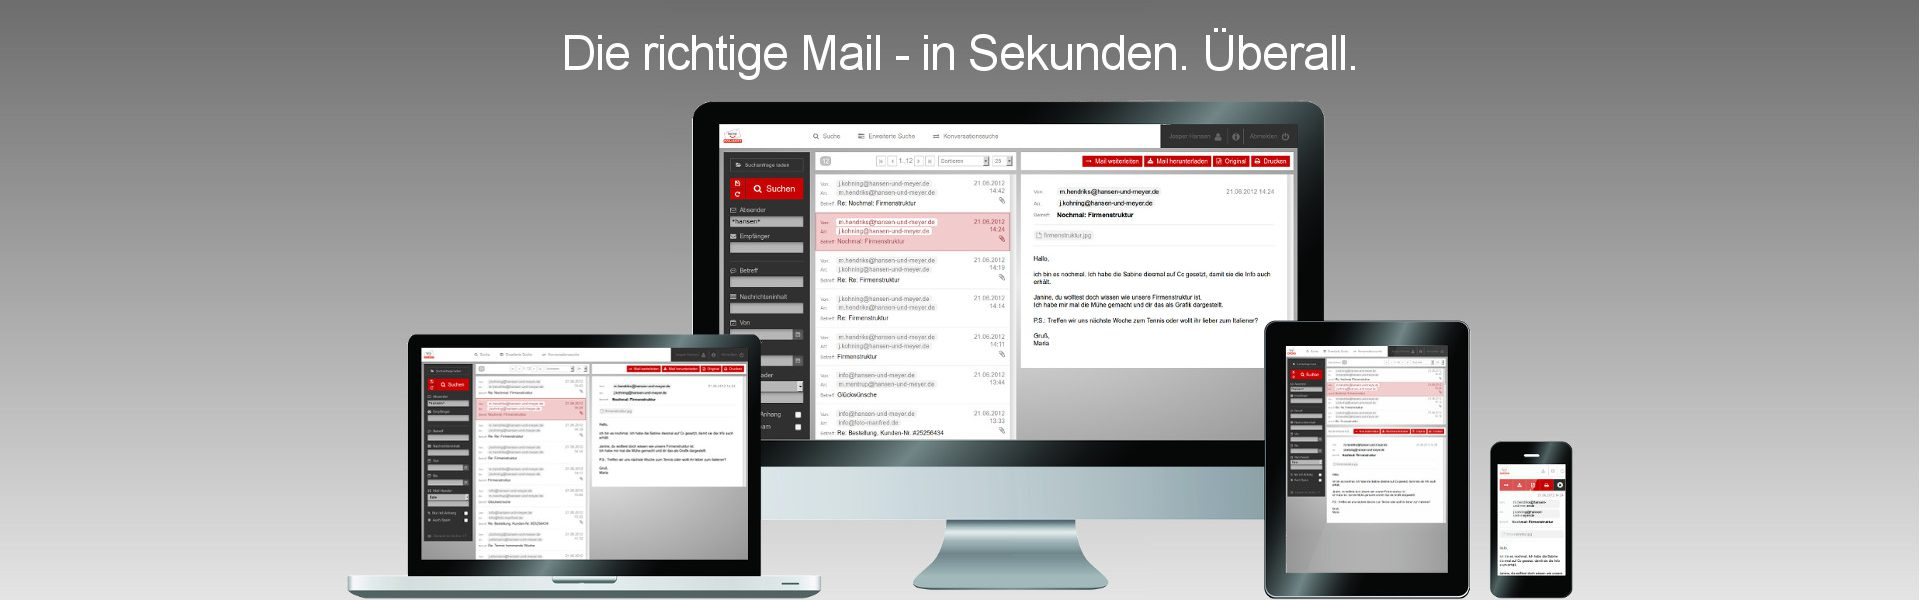 Benno MailArchiv auf iMac, PC, MacBook, Notebook, iPad, Tablet, iPhone, Smartphone, Android-Geräten